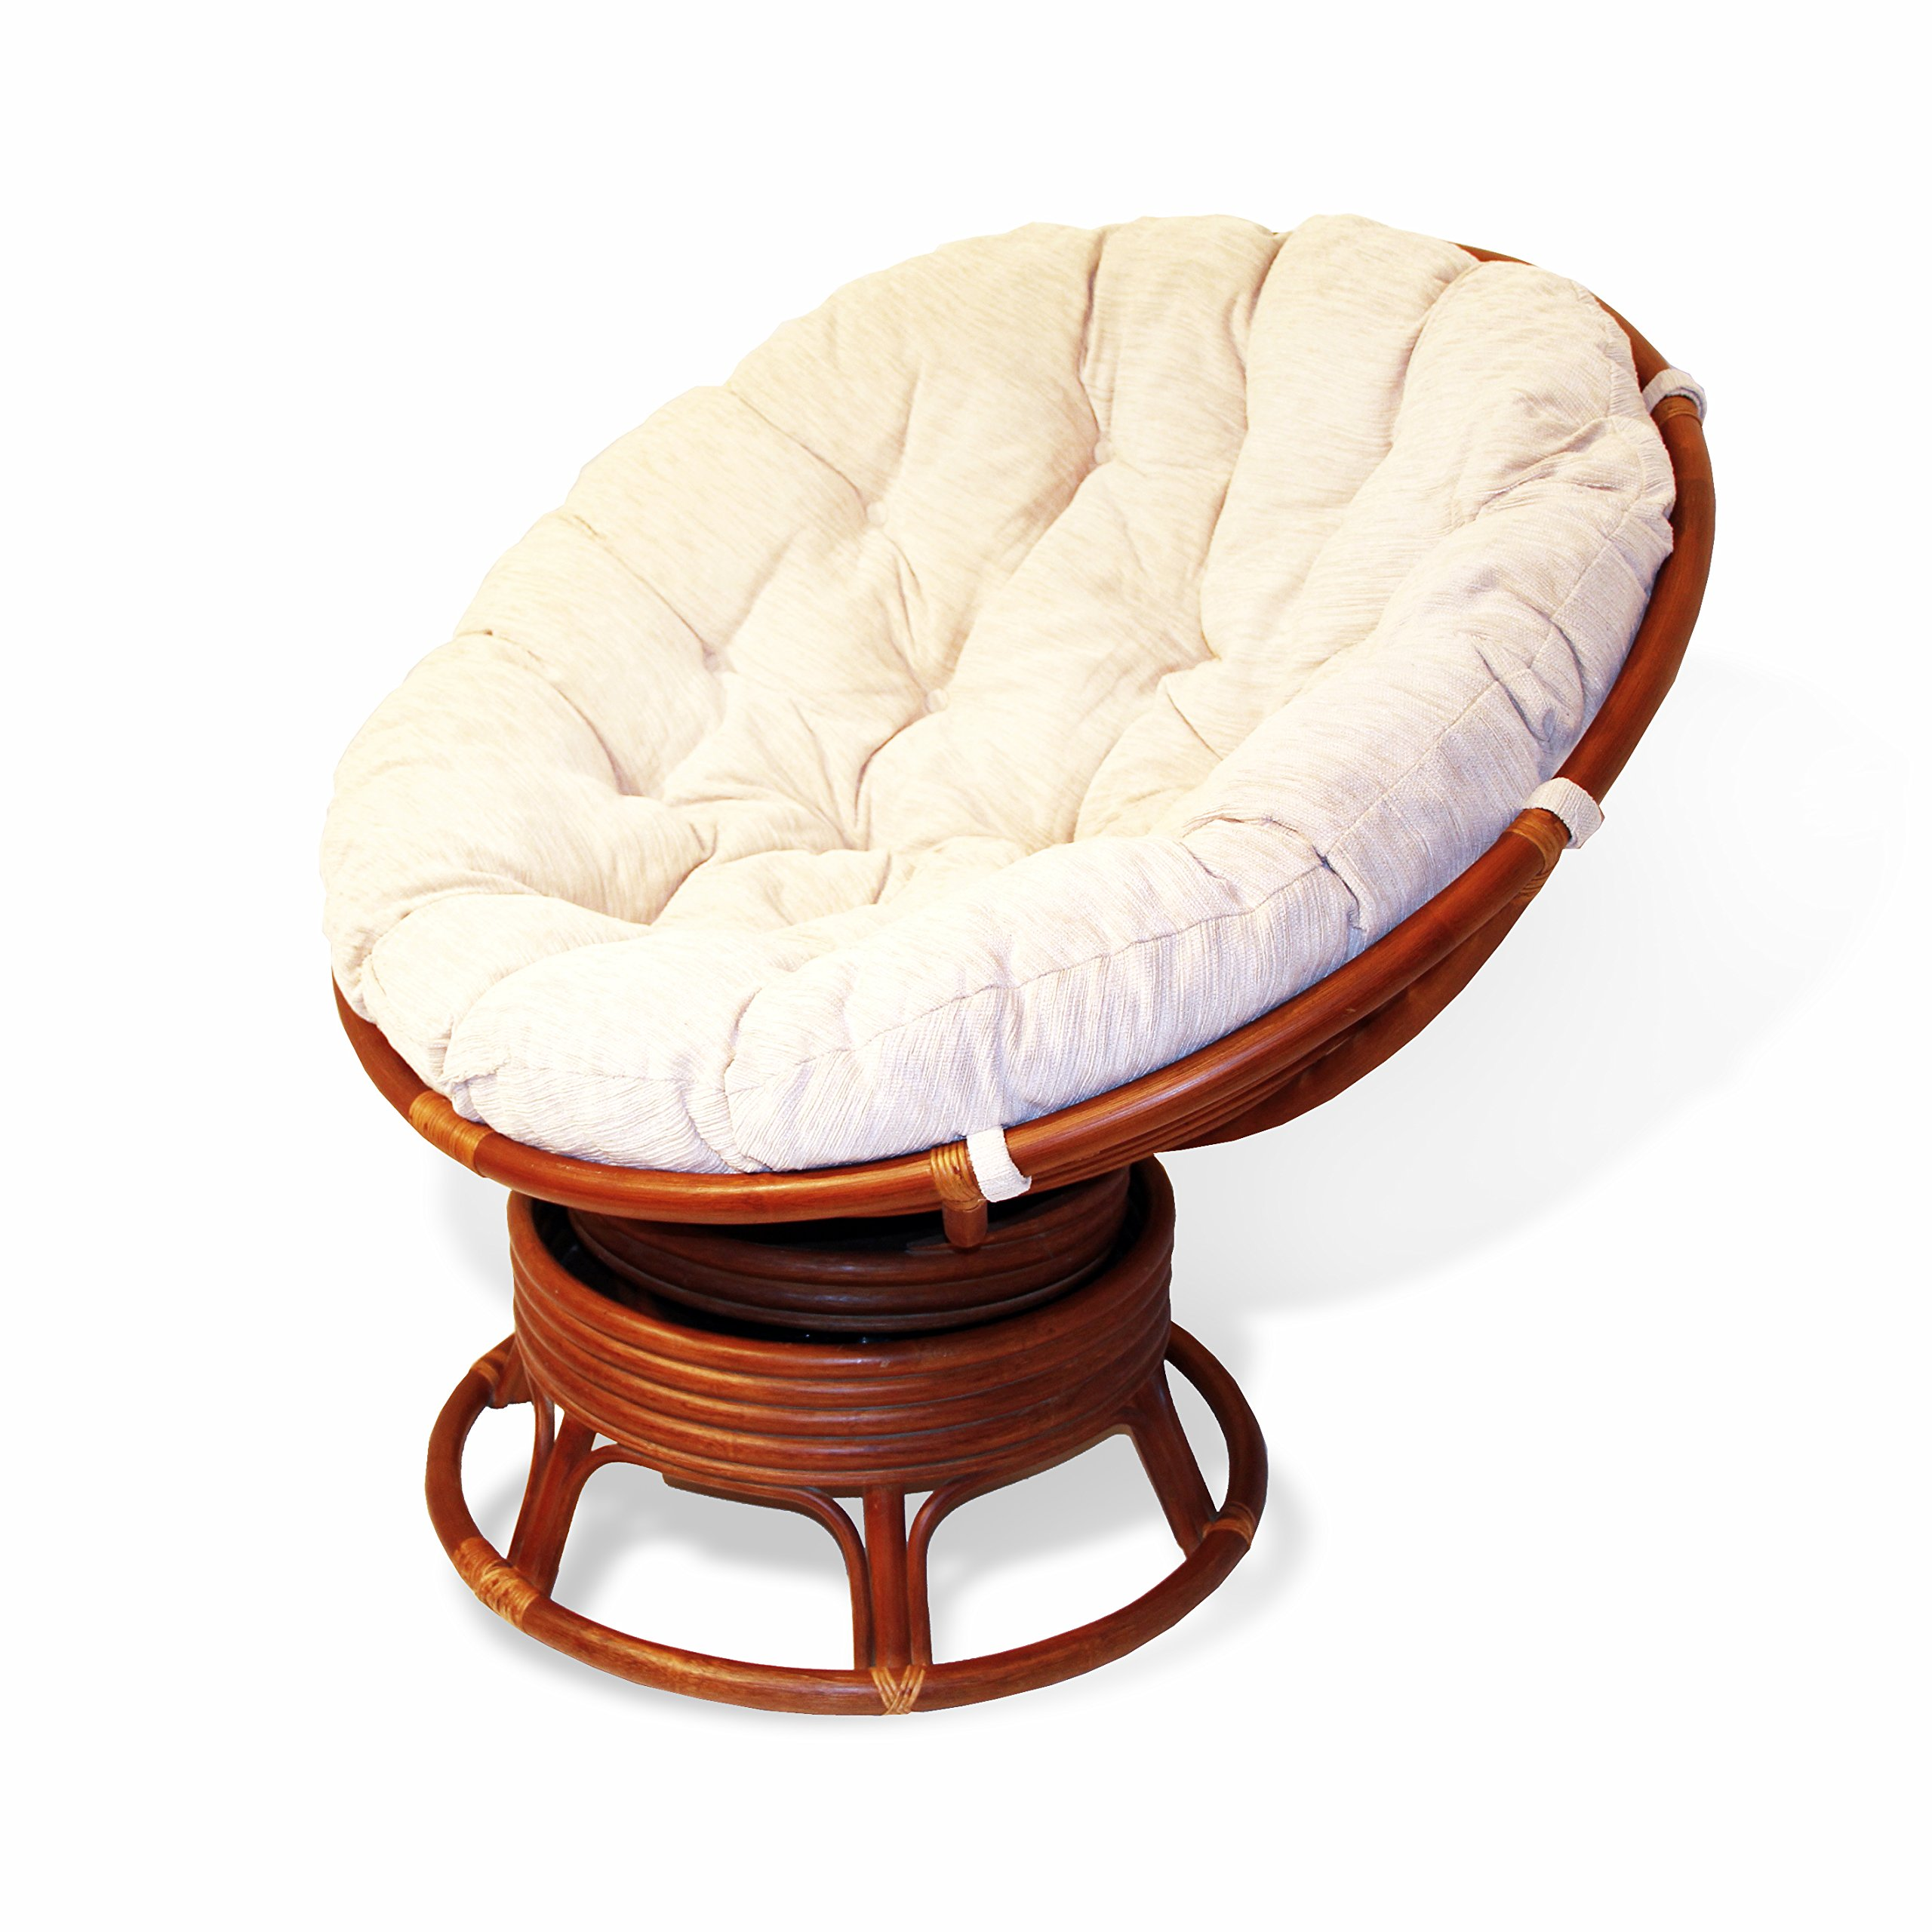 Rattan Wicker Swivel Rocking Round Papasan Chair with Cushion Colonial (Light Brown) by Rattan Wicker Furniture